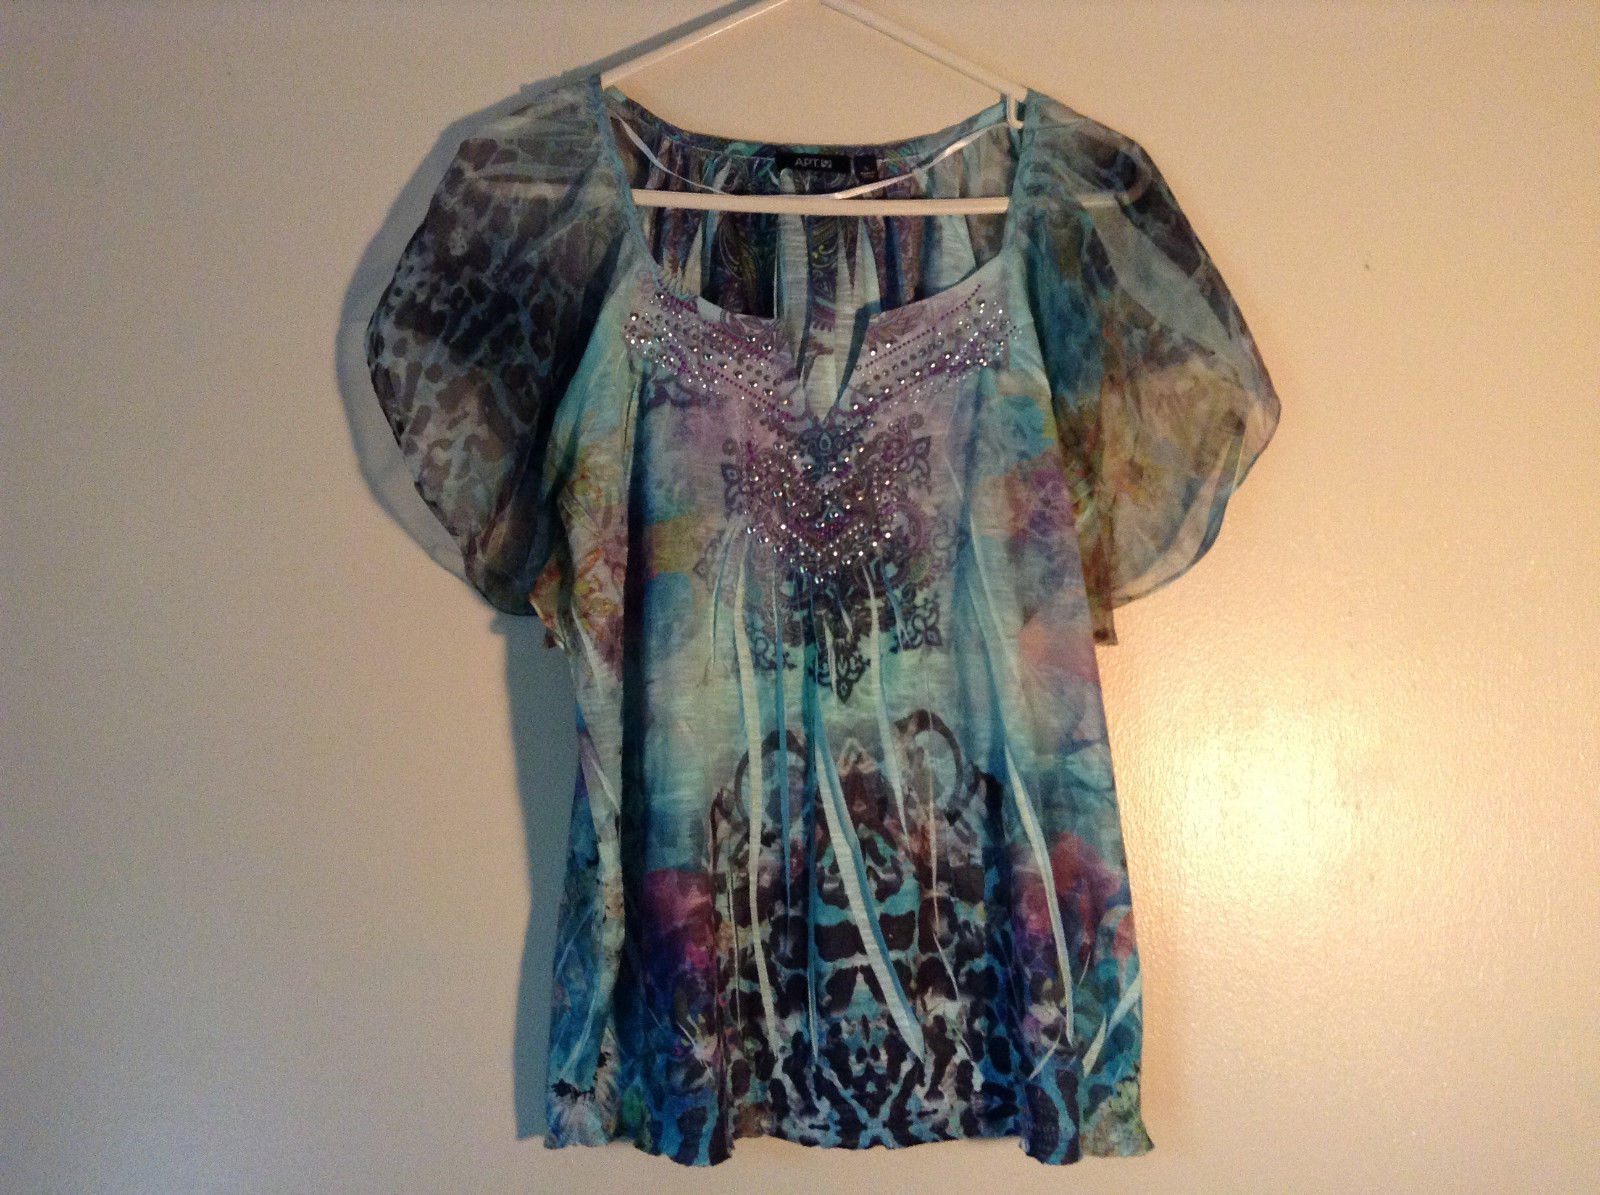 Fancy V Neck Teal Blue with Purple Green Jewels Top by Apt 9 Size Large